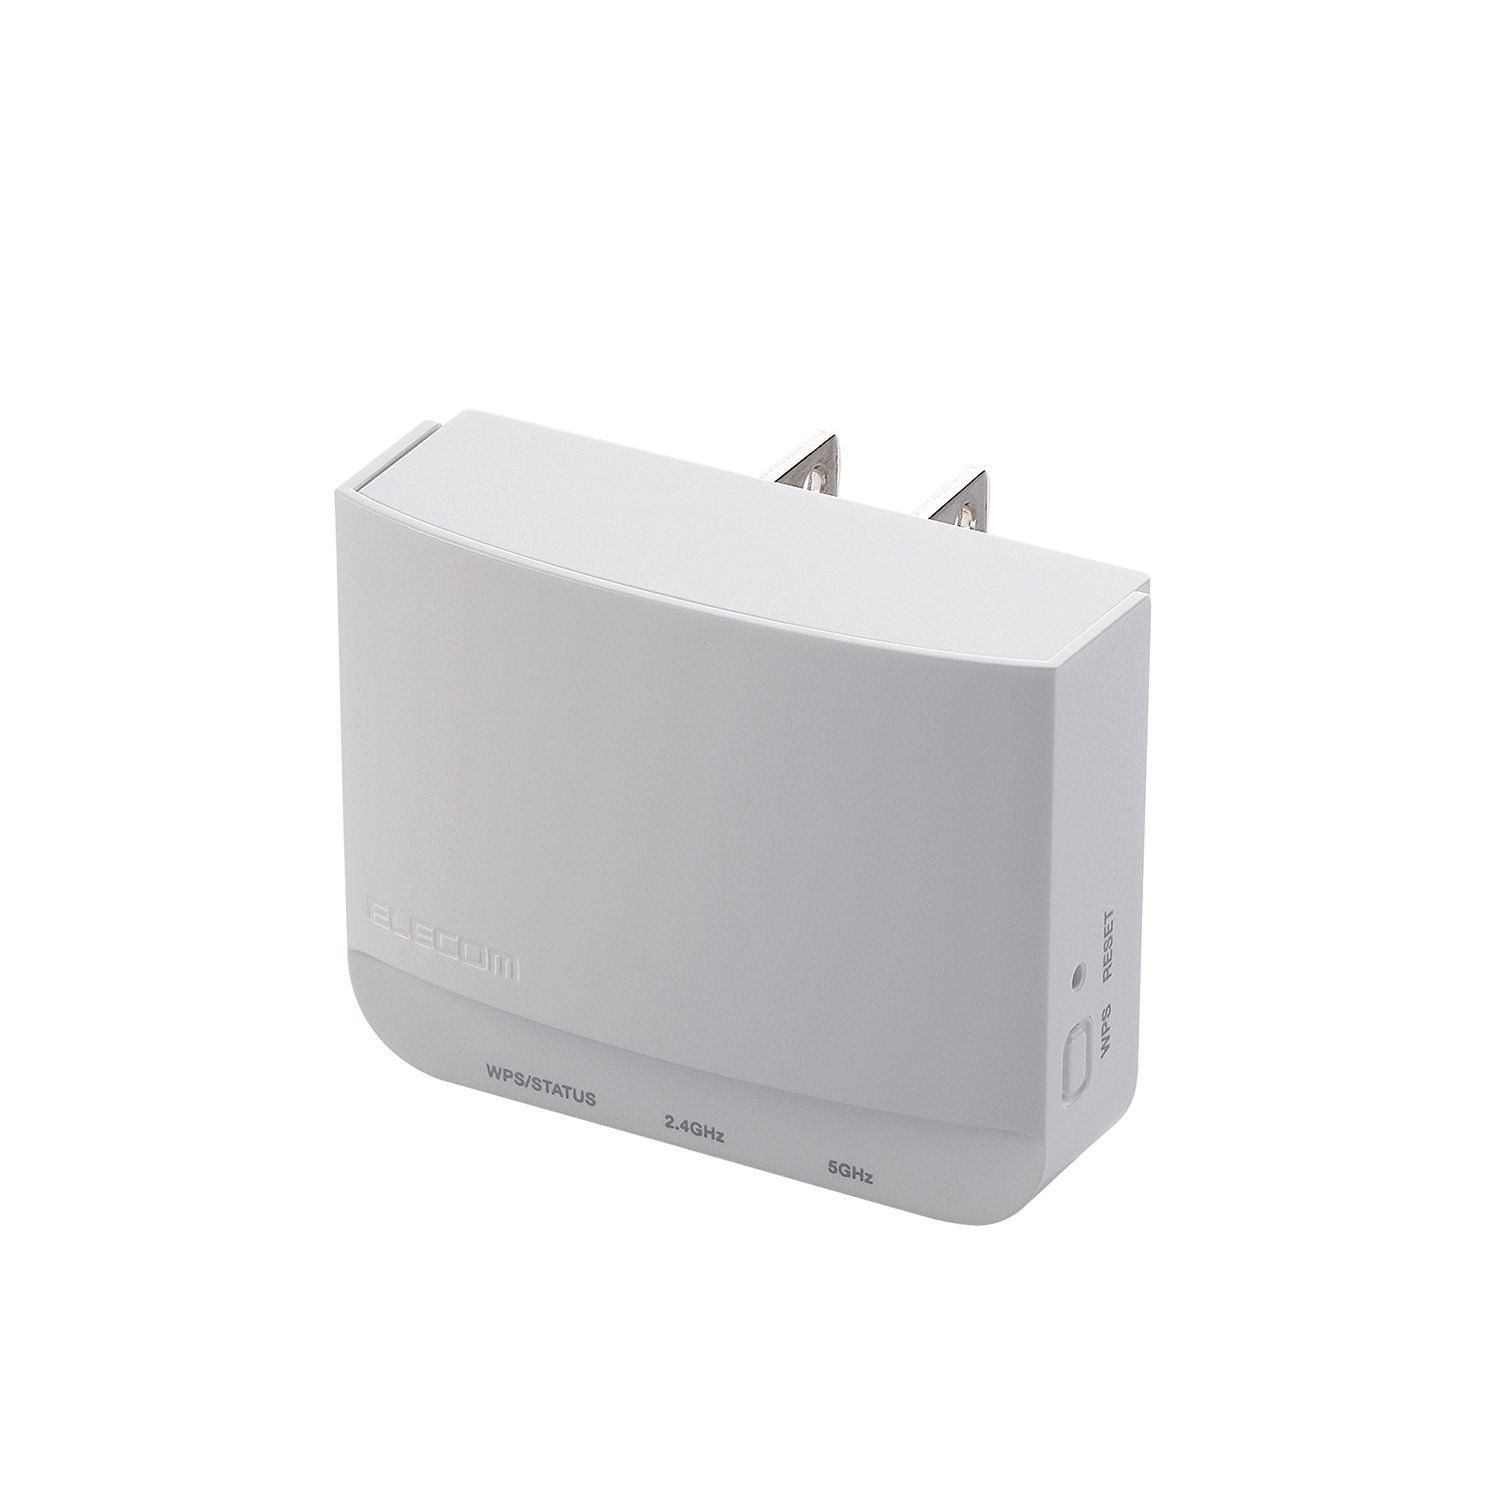 Elecom [Outlet Straight Interpolation] Wireless LAN Relay Machine (11ac 433mbps + 11n 300mbps · Relay Unit Alone) Wtc-733hwh